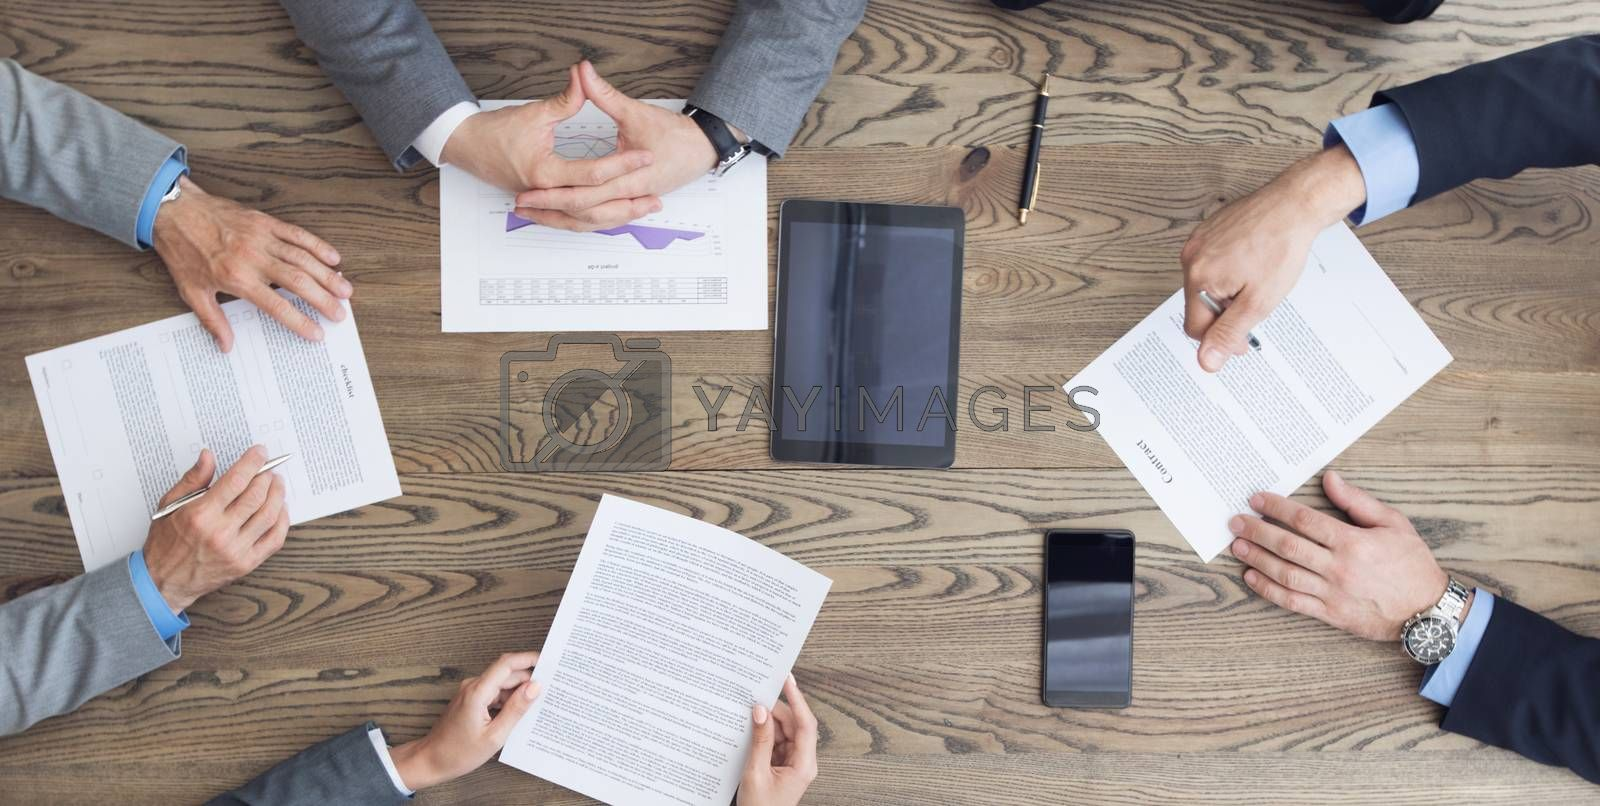 Top view of confident business men in suits sitting at wooden table and discussing new contract terms before signing it top view